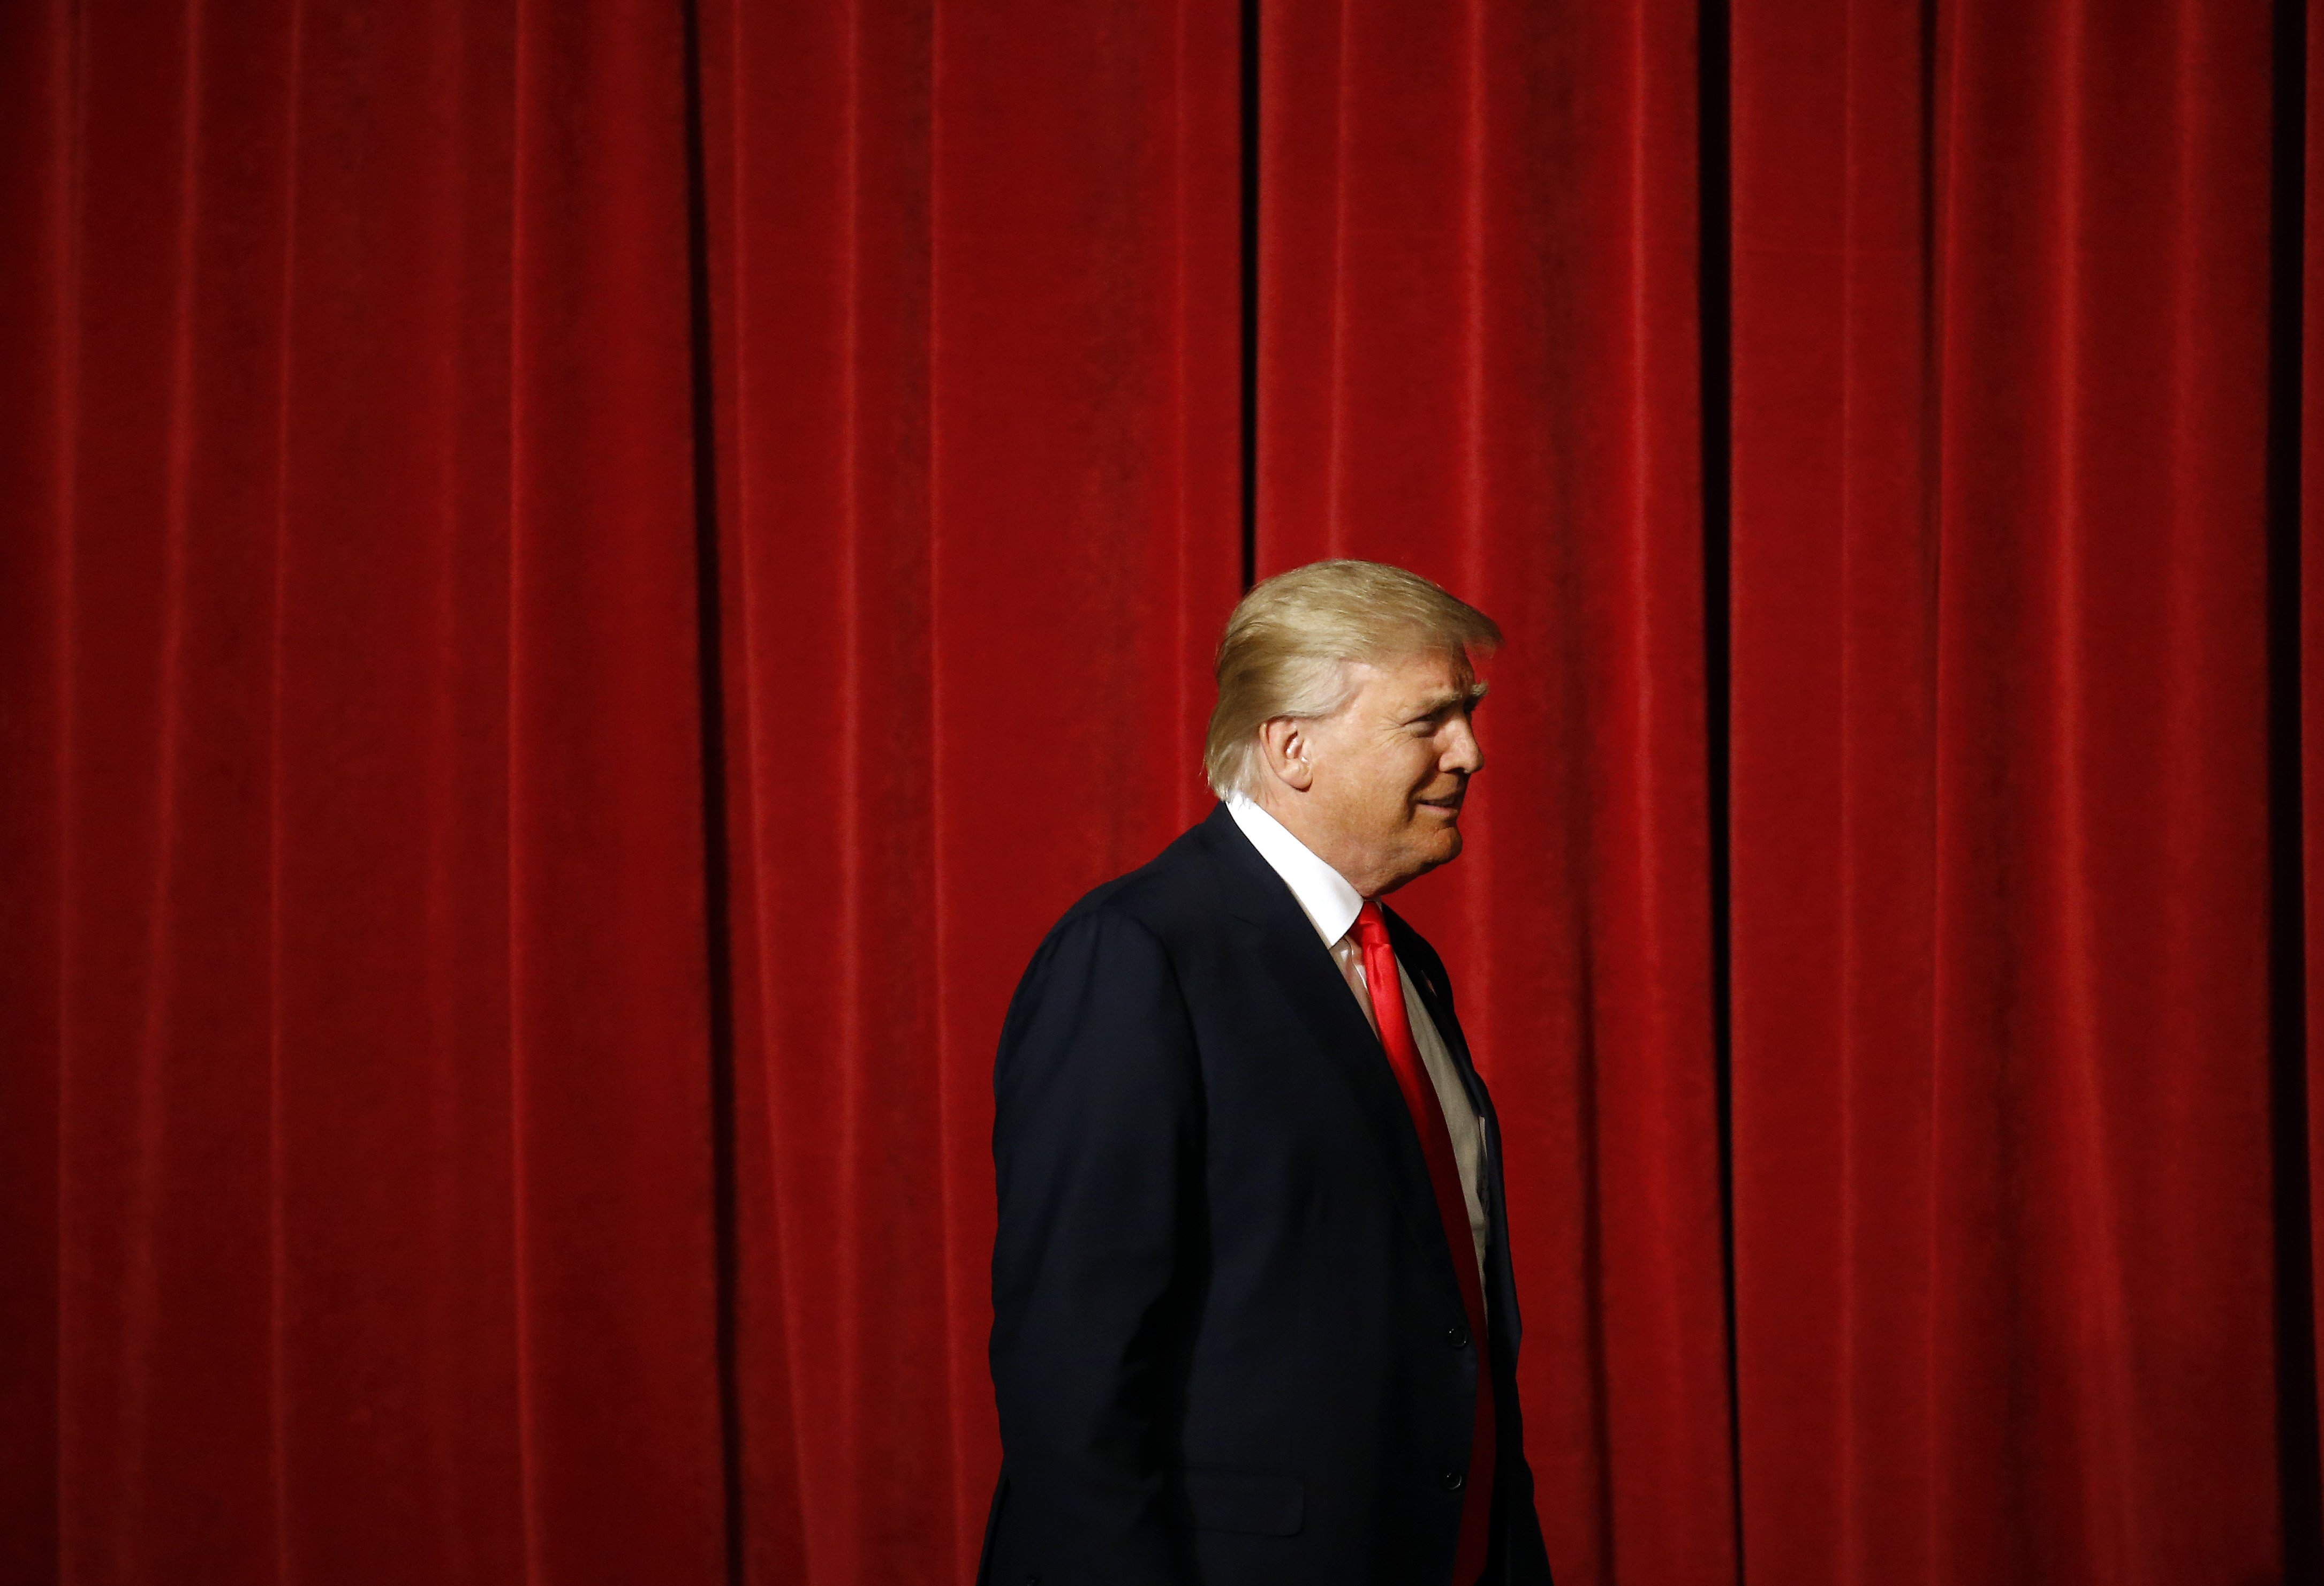 Donald Trump walks onstage for a rally at the Surf Ballroom in Clear Lake, IO on Jan. 9, 2016.